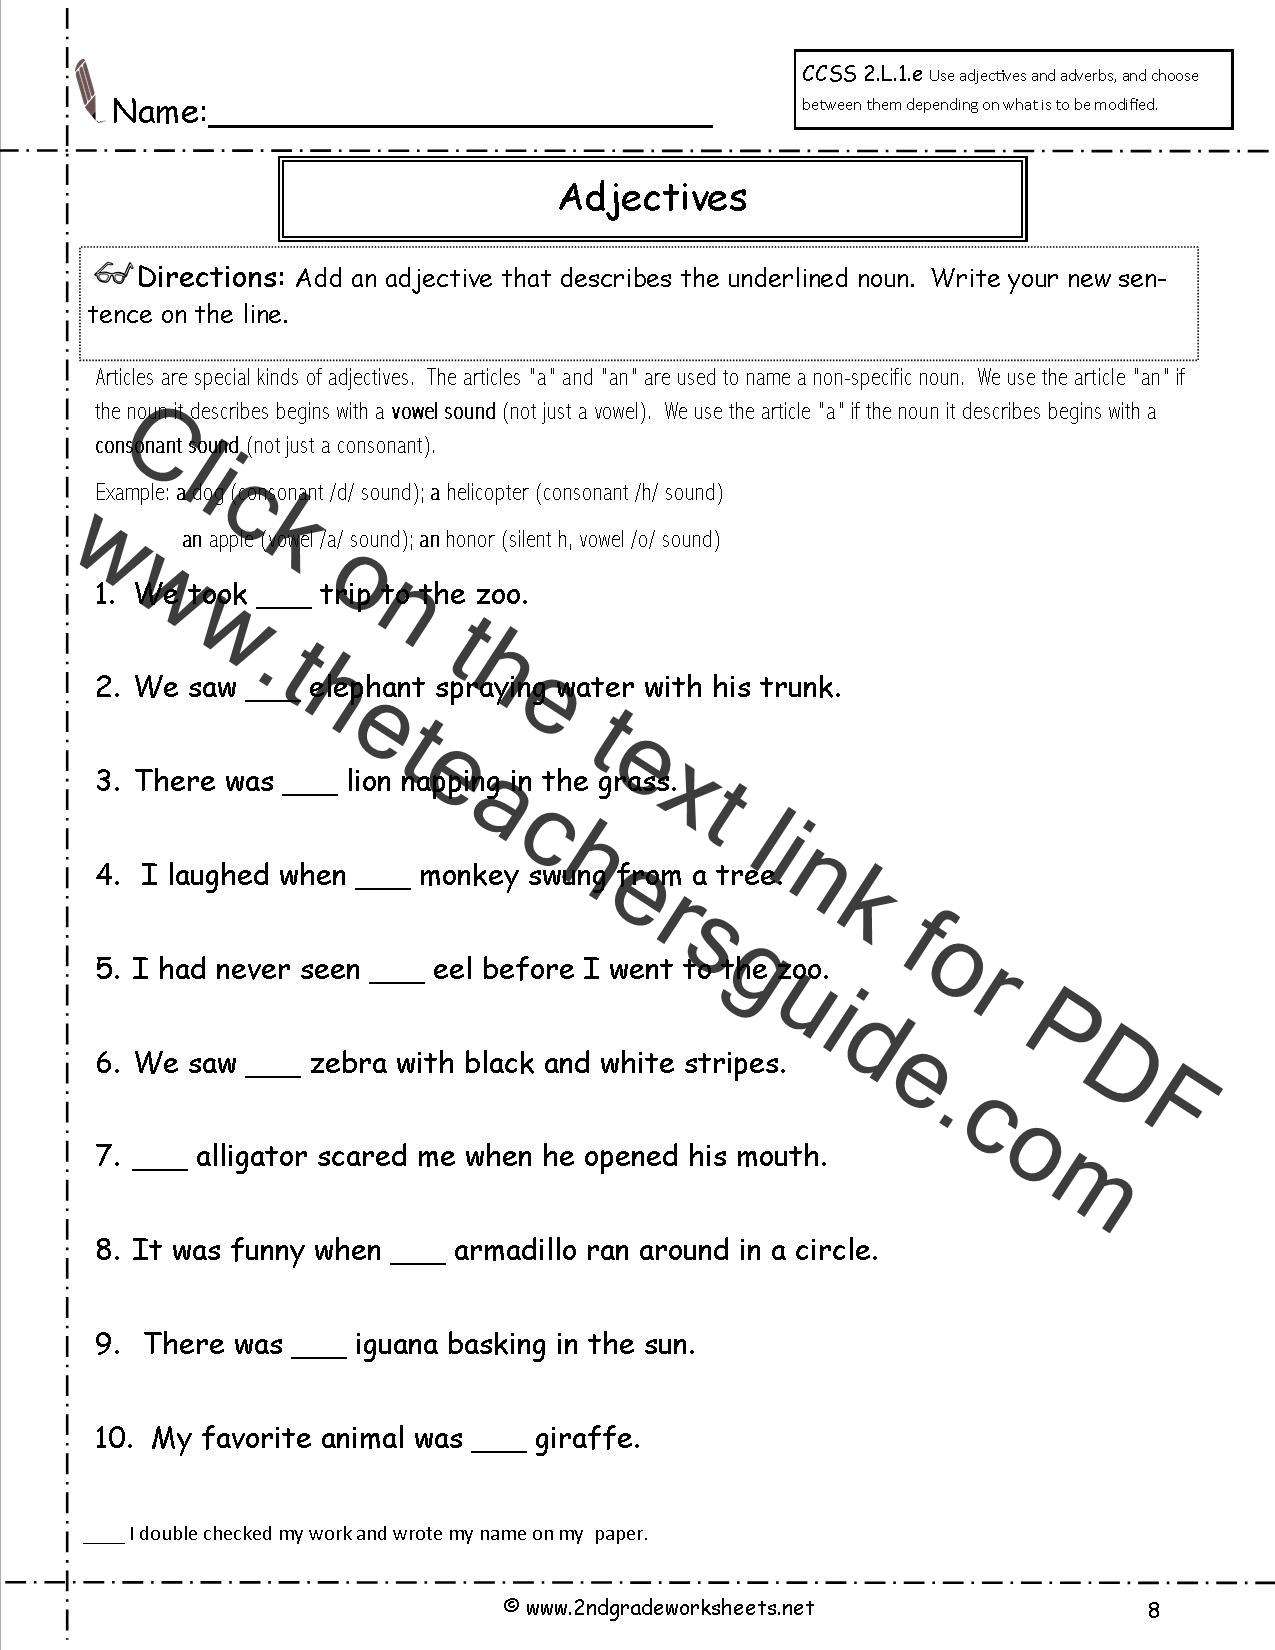 Free LanguageGrammar Worksheets and Printouts – Free Second Grade Worksheets